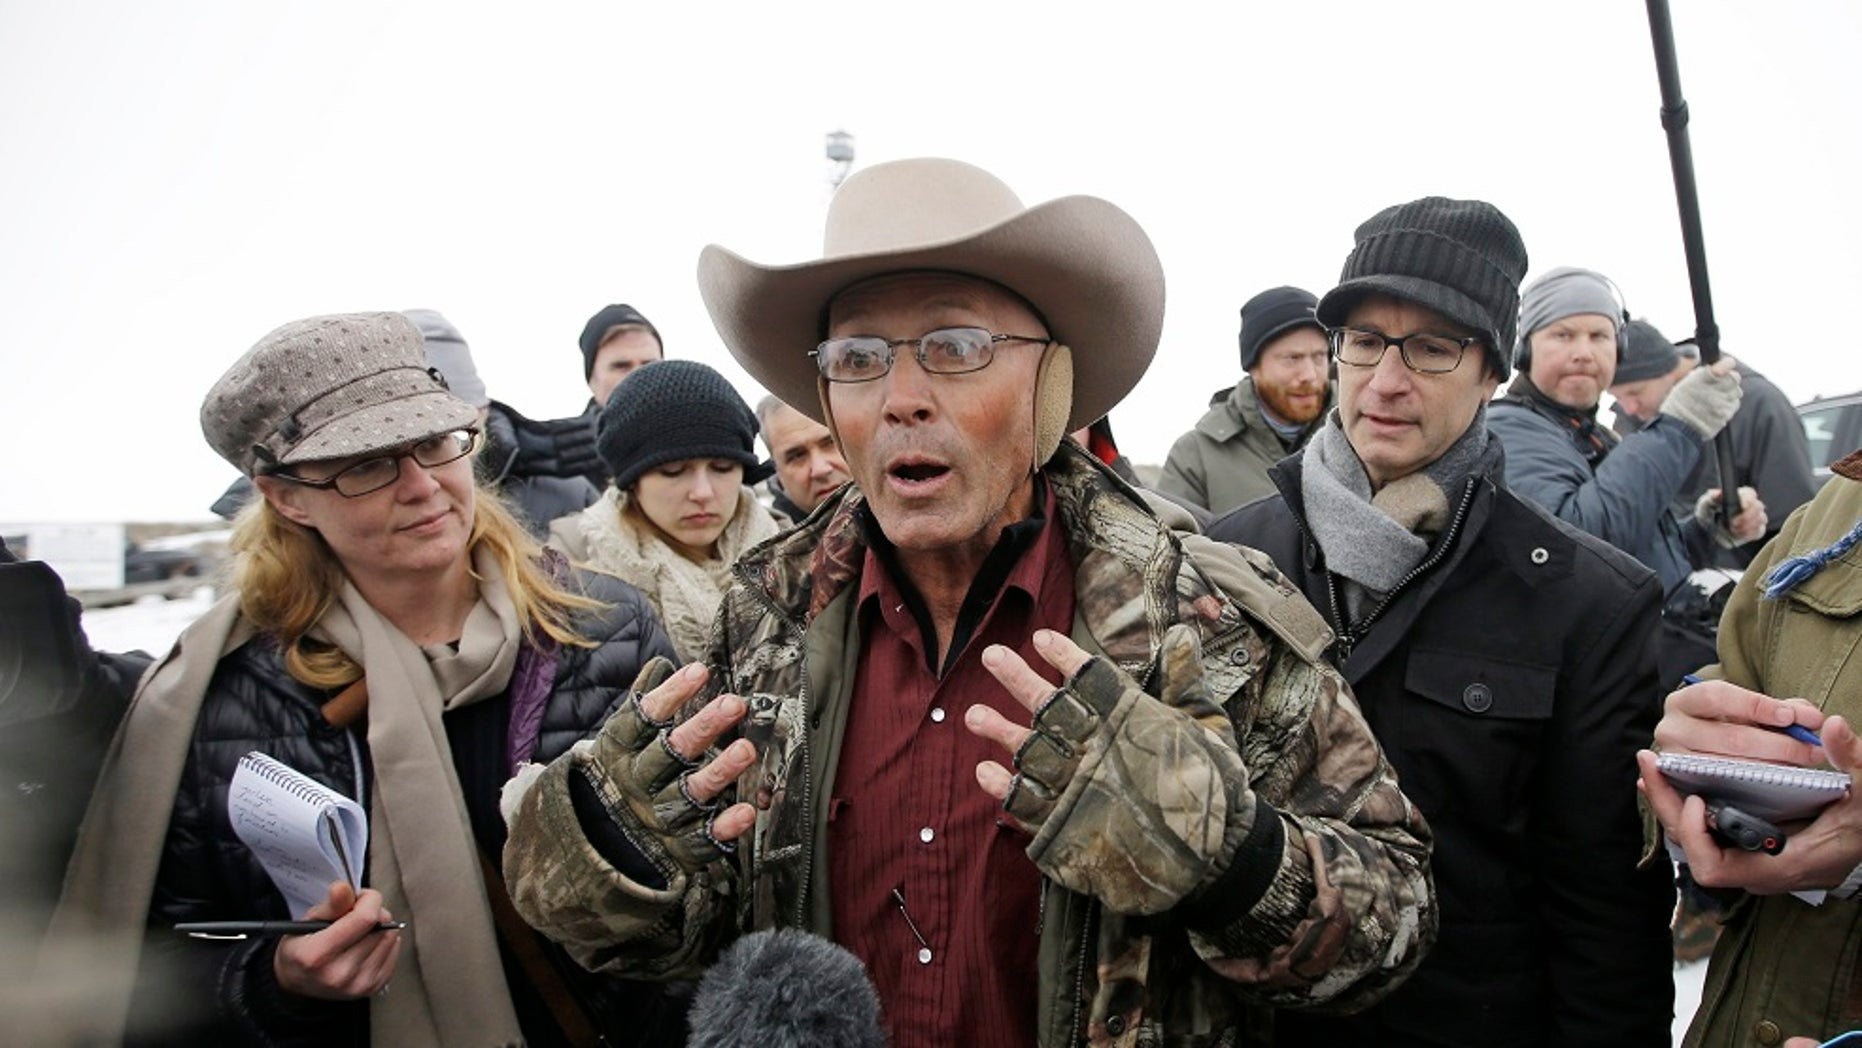 """Arizona rancher Robert """"LaVoy"""" Finicum was shot and killed in January 2016 when officers arrested leaders of an armed occupation of a federal wildlife refuge in Oregon. An FBI agent is reportedly being indicted for lying about shooting Finicum."""